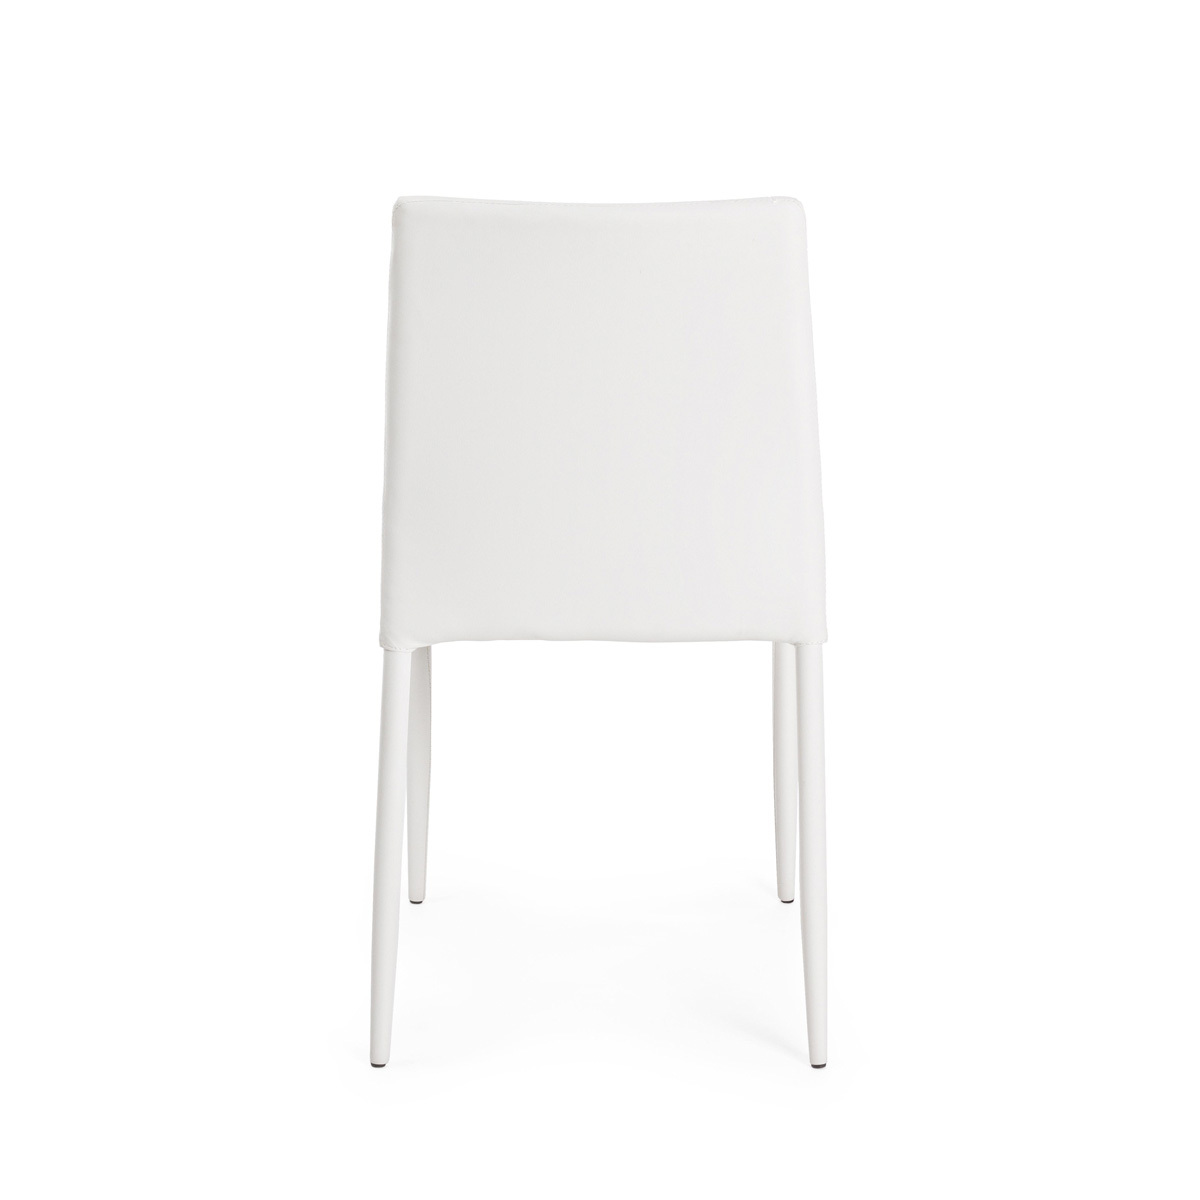 Photos 3: Bizzotto Chair in metal and eco-leather - white 0731794